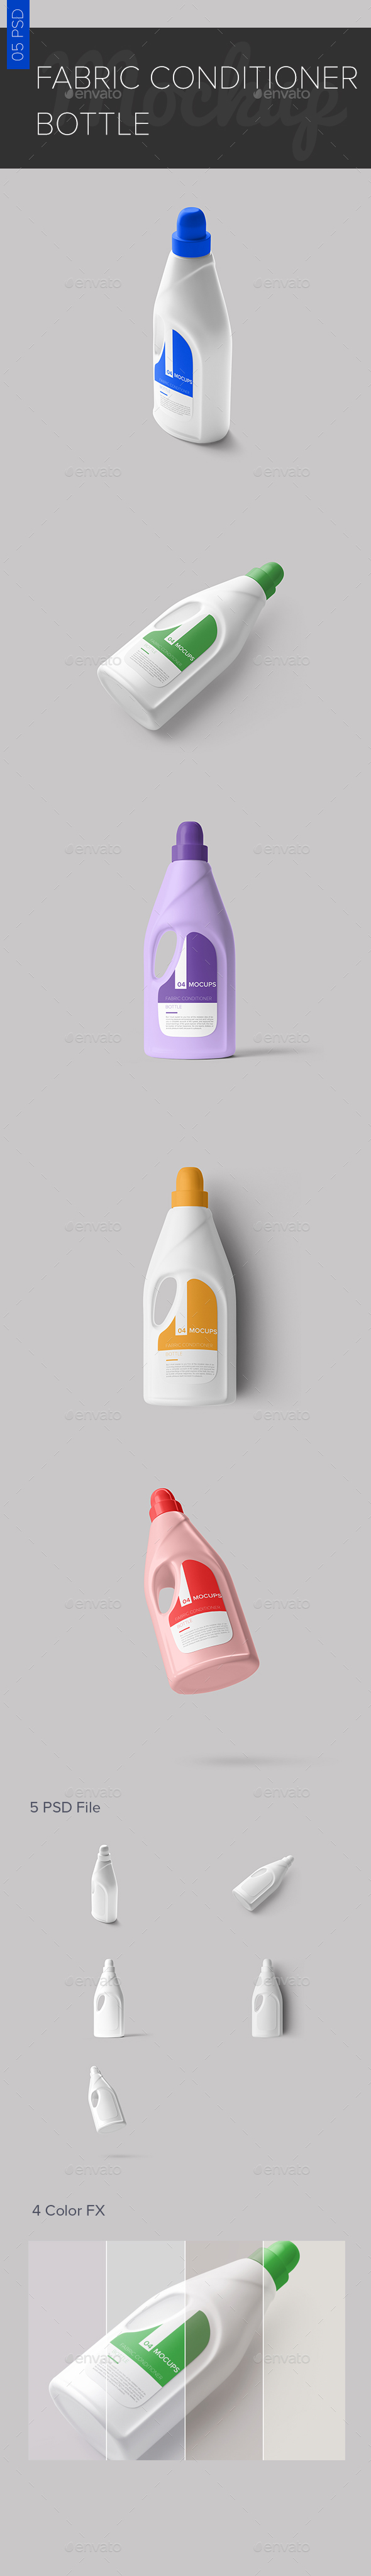 Fabric Conditioner Bottle Mock-ups